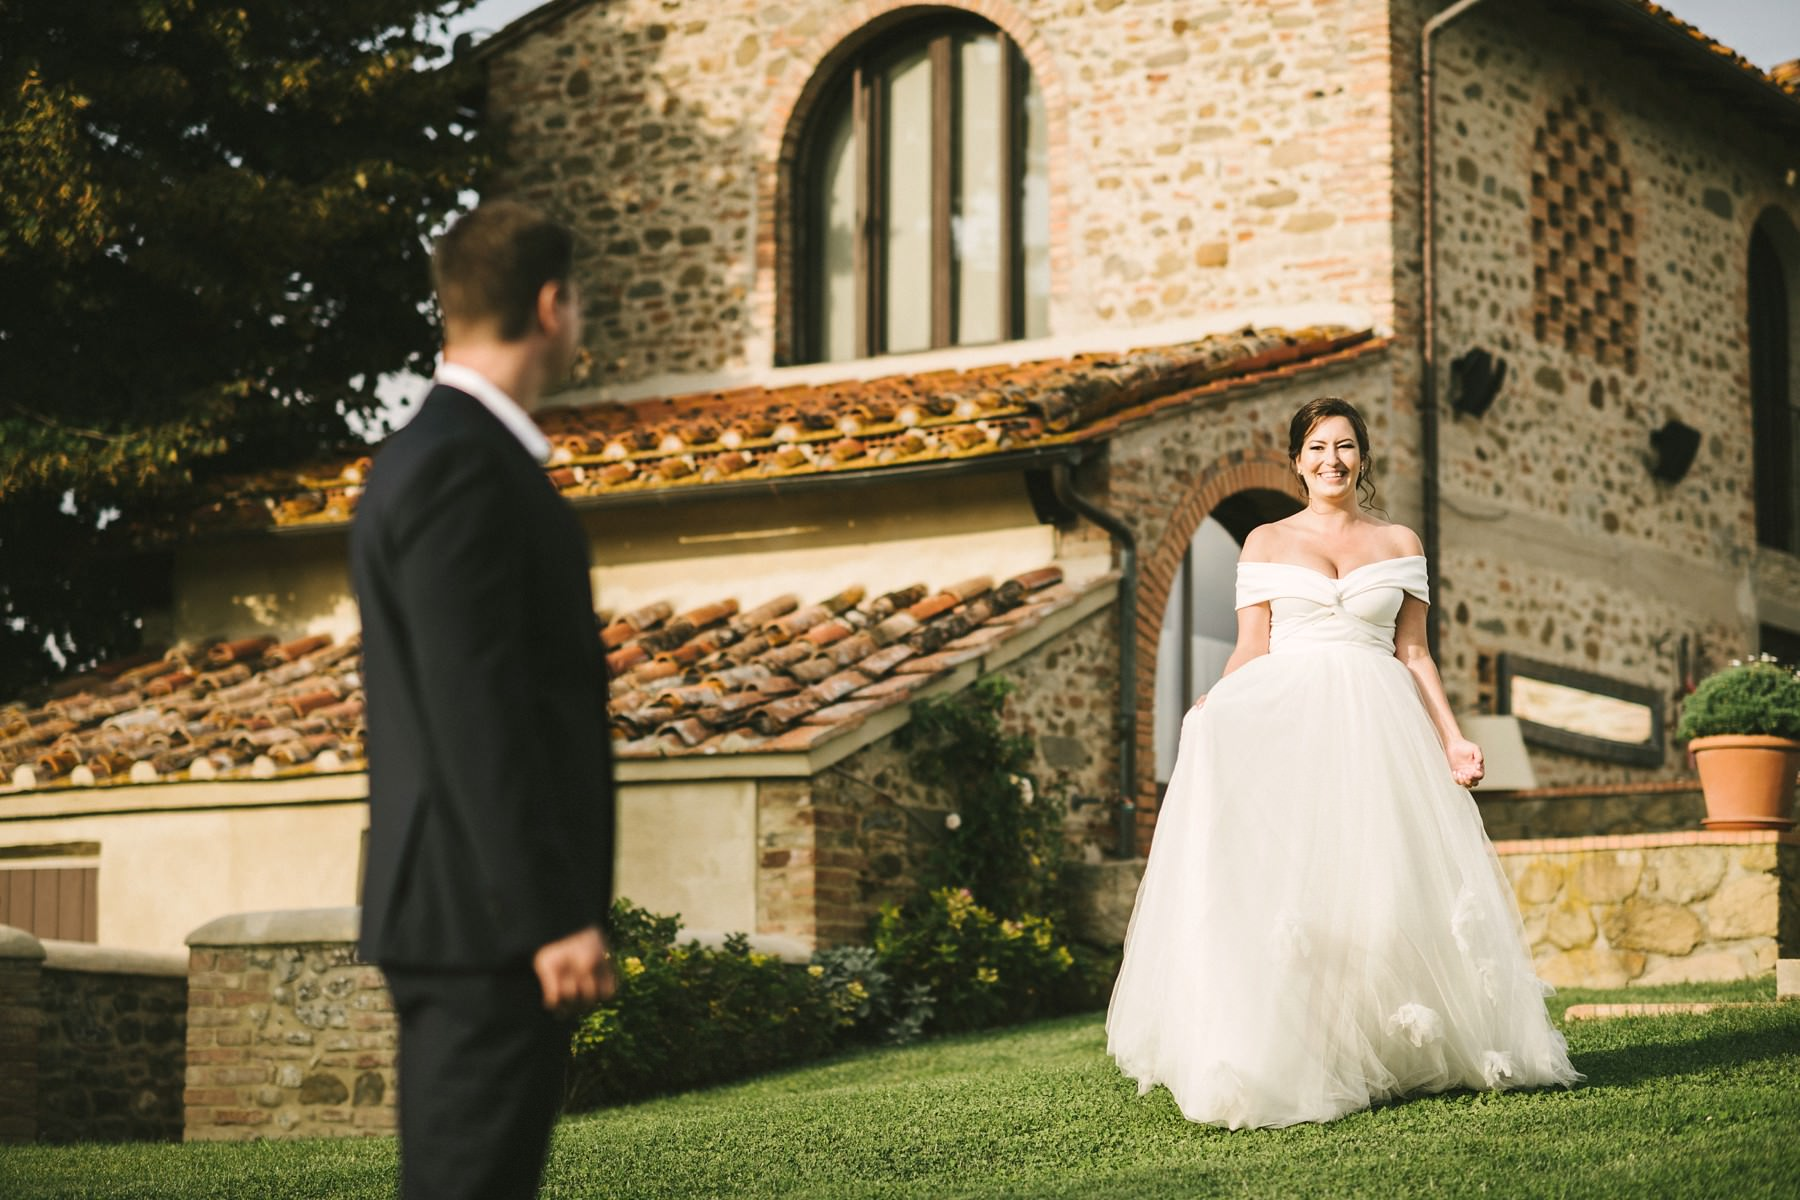 Bride and groom romantic elopement first look at tuscan farmhouse Casetta in Chianti